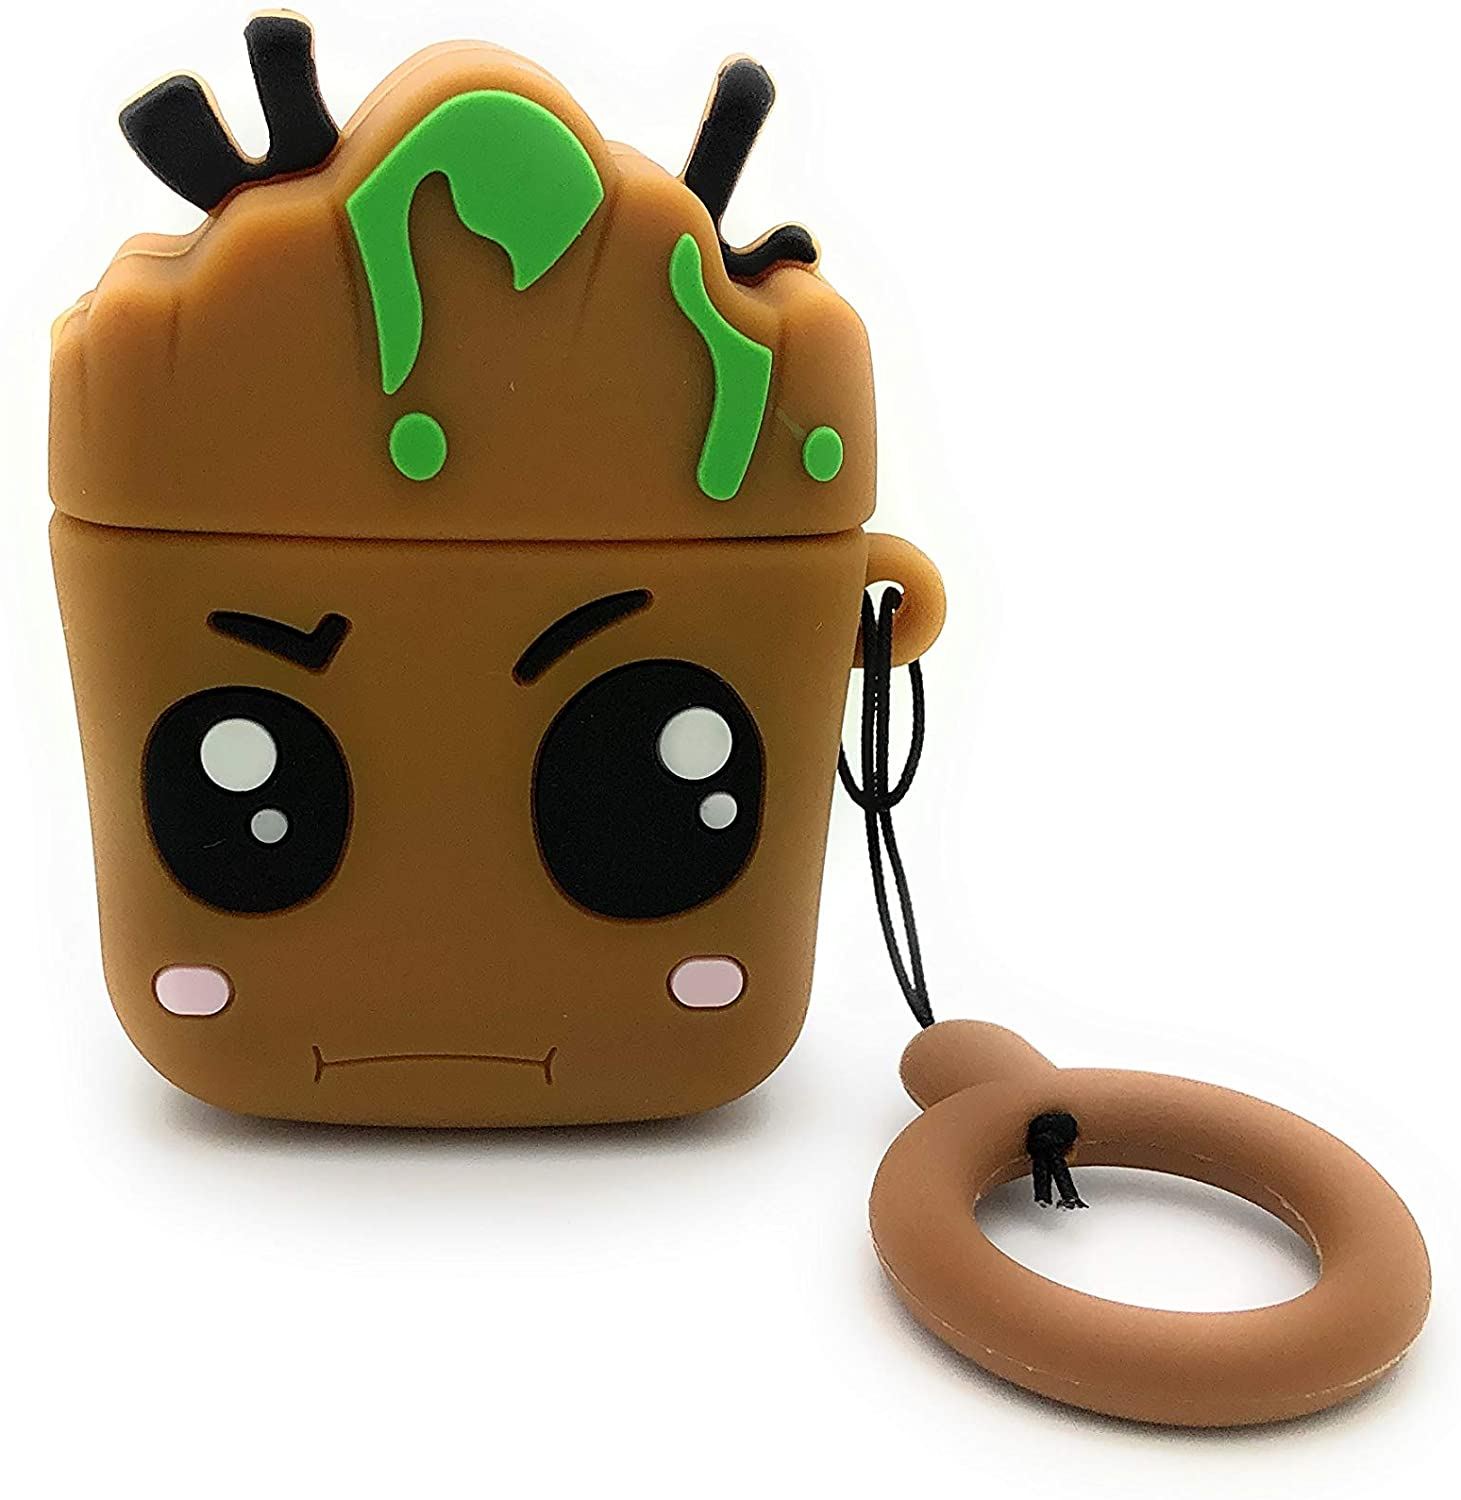 HotelPaw Baby Tree AirPods Case Cover - Cartoon Series - 3D Cute Cartoon Character AirPods Silicone Case/Skin/Cover for Girls, Boys, Kids, Teens (Compatible with AirPods Gen 1 and 2)